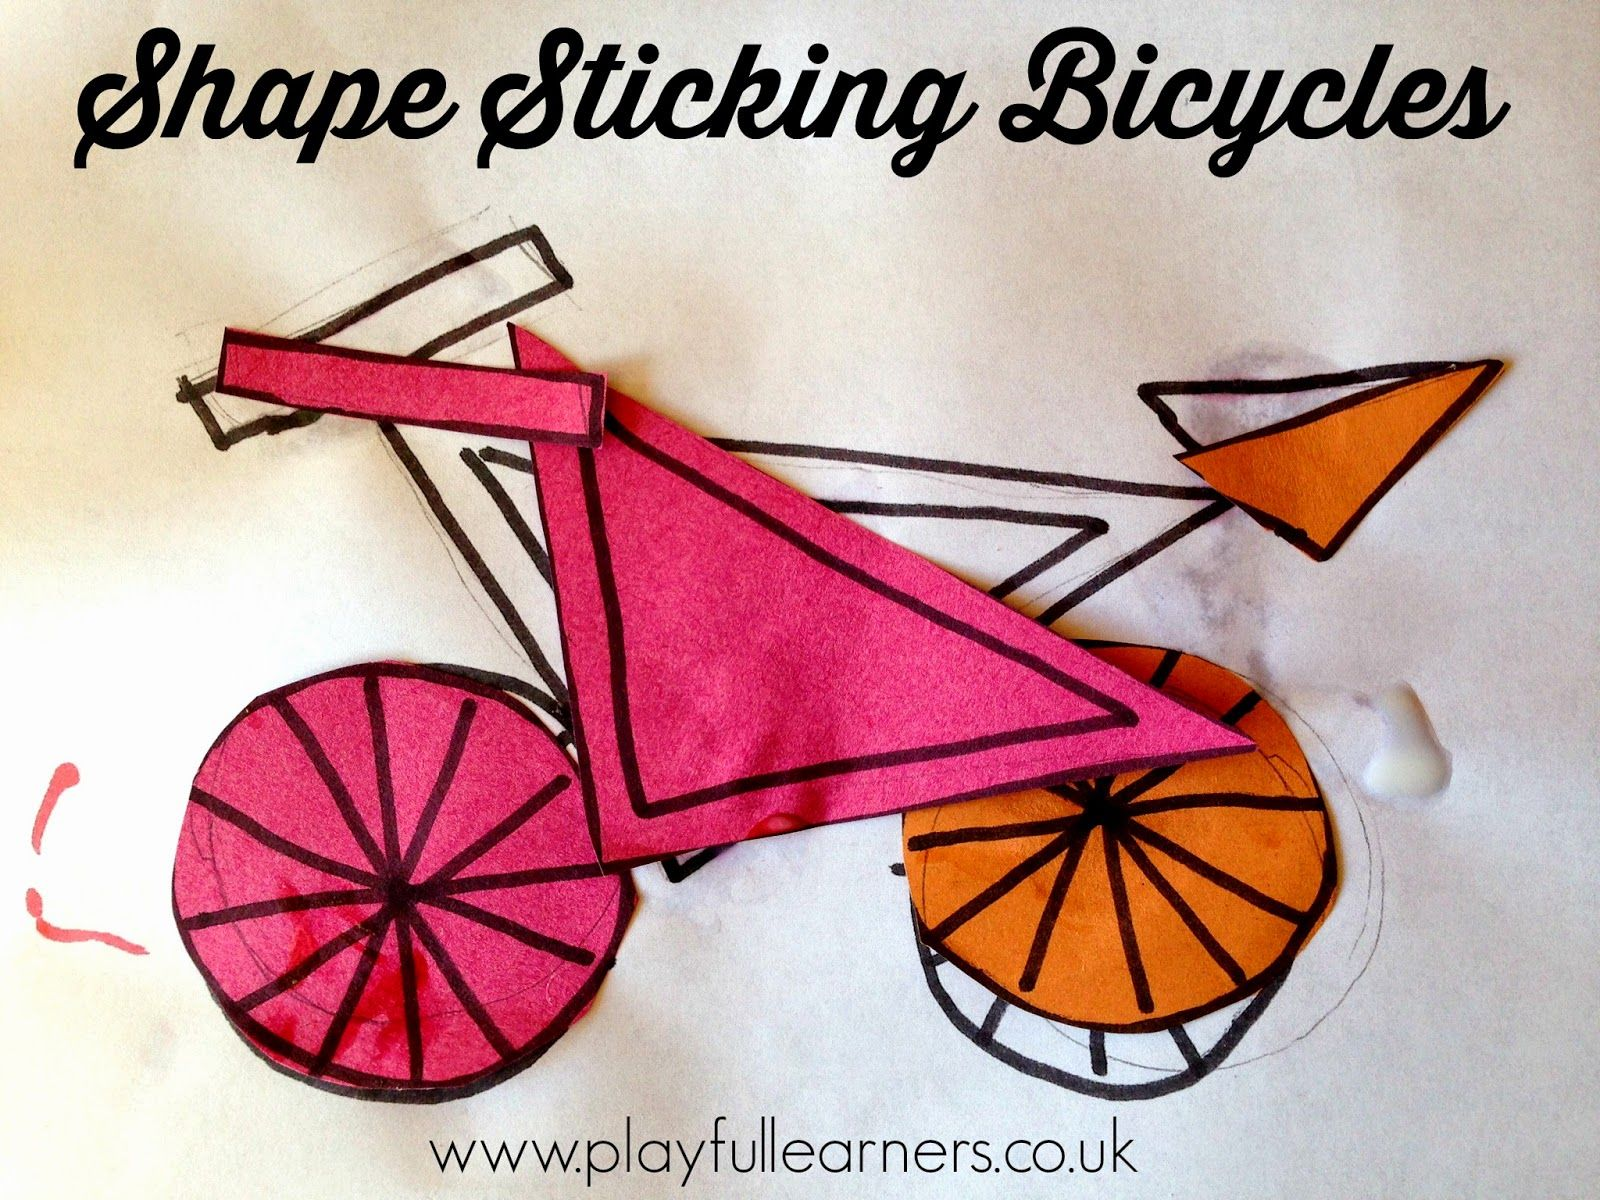 Playful Learners Shape Sticking Bicycles